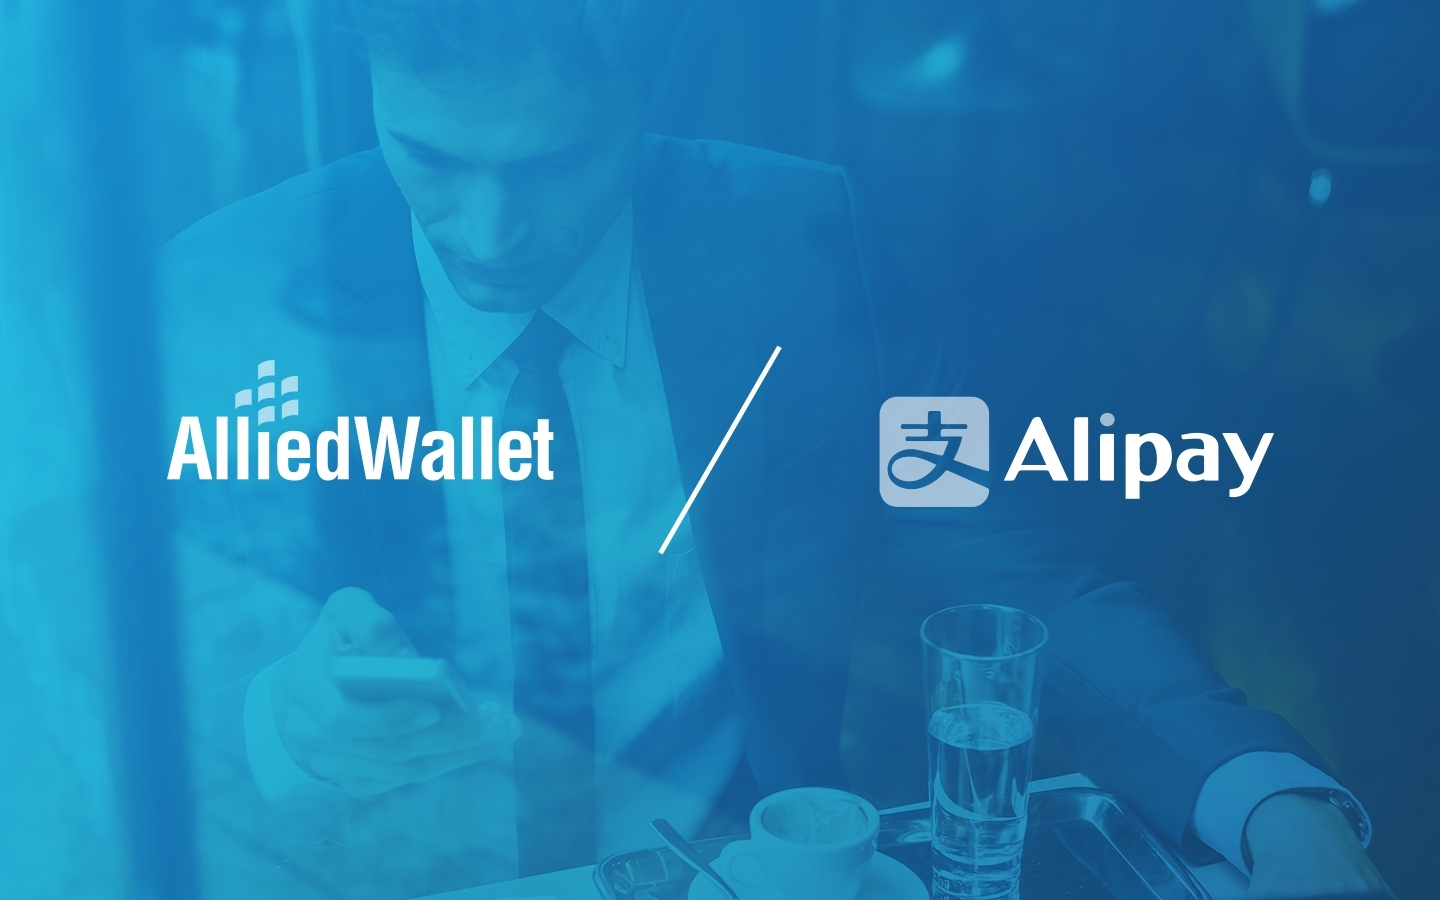 Allied Wallet Adds AliPay to Its Growing Platform | Business